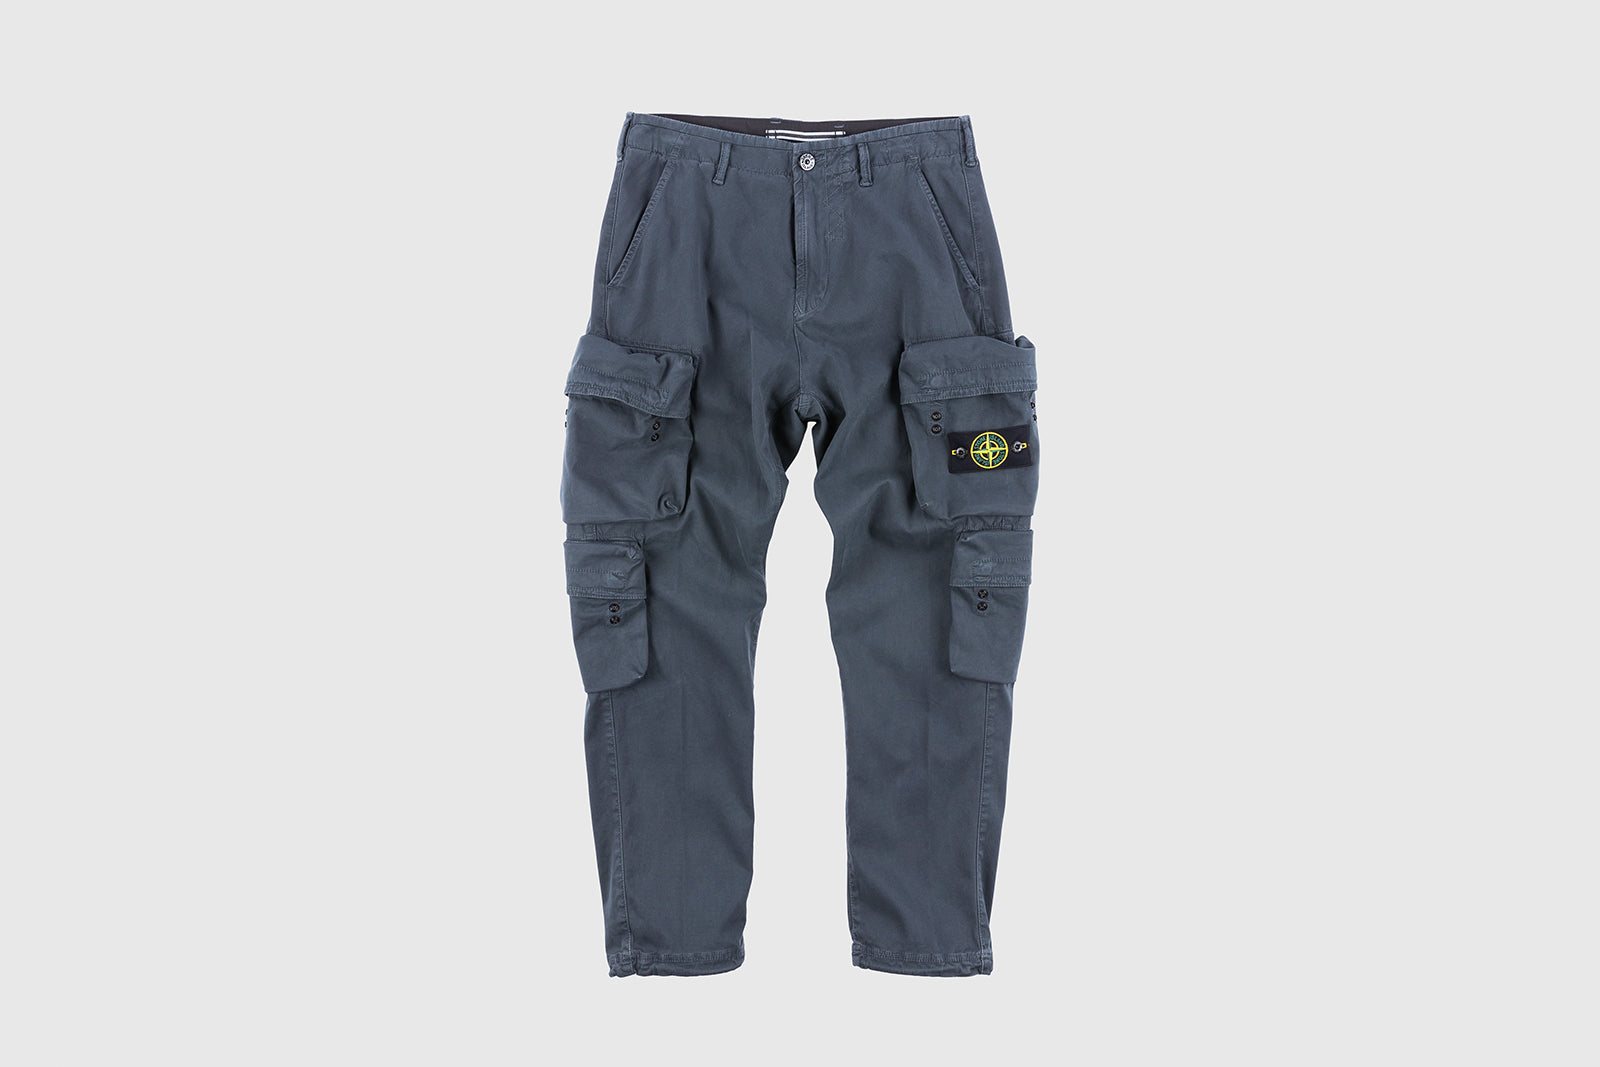 STONE ISLAND 30702 'OLD' DYE TREATMEANT CARGO TROUSERS